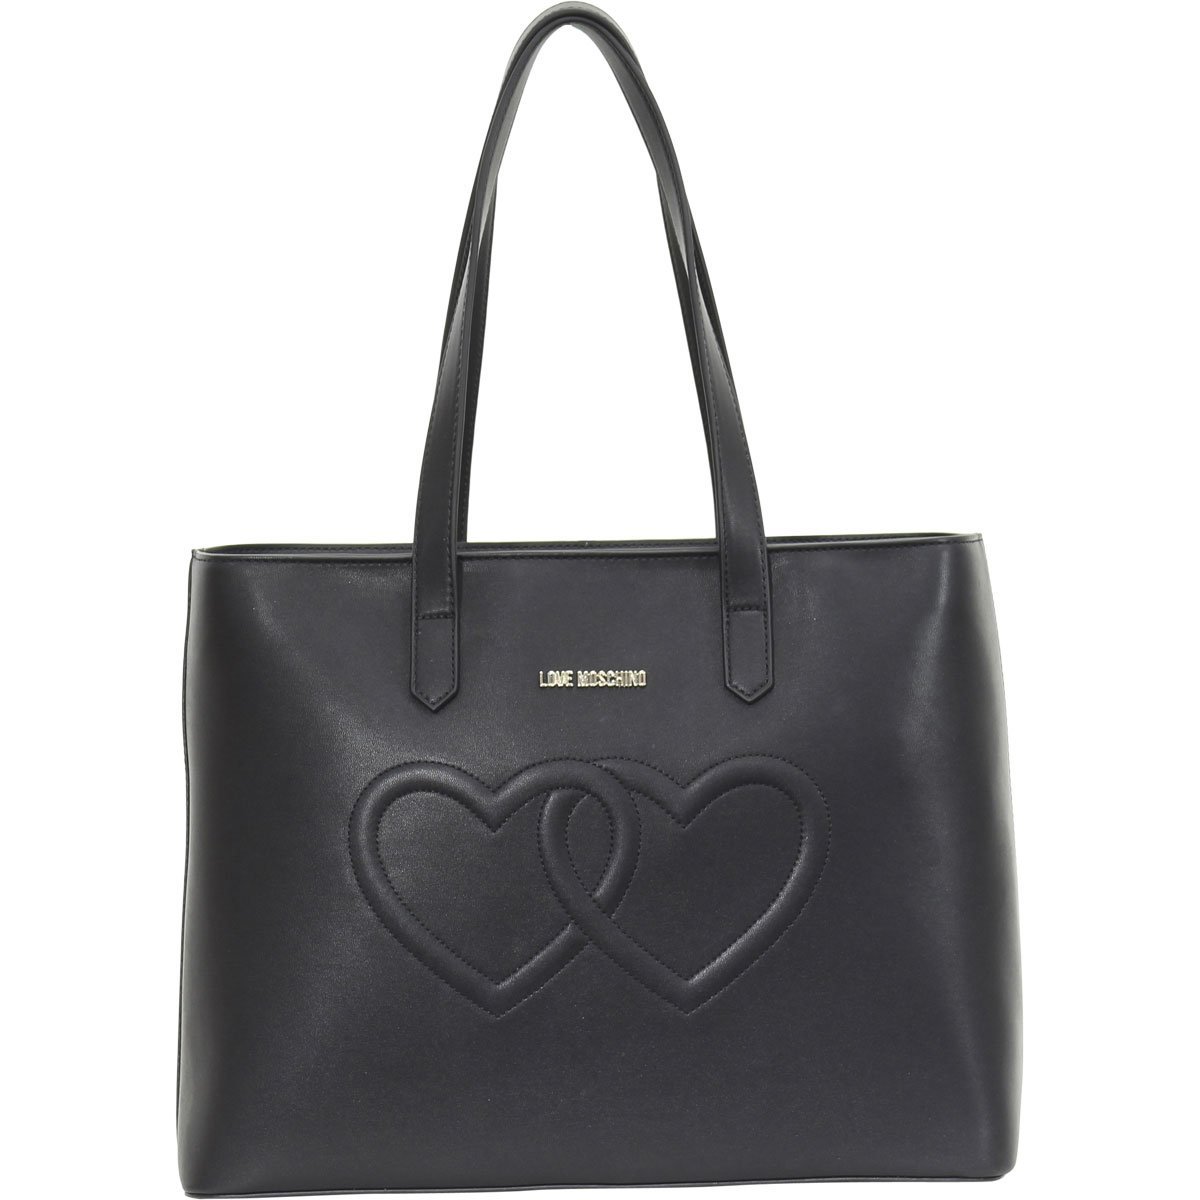 ddfd0d2a19293 Amazon.com  LOVE Moschino Women s Embossed Heart Tote Bag Black One Size   Shoes